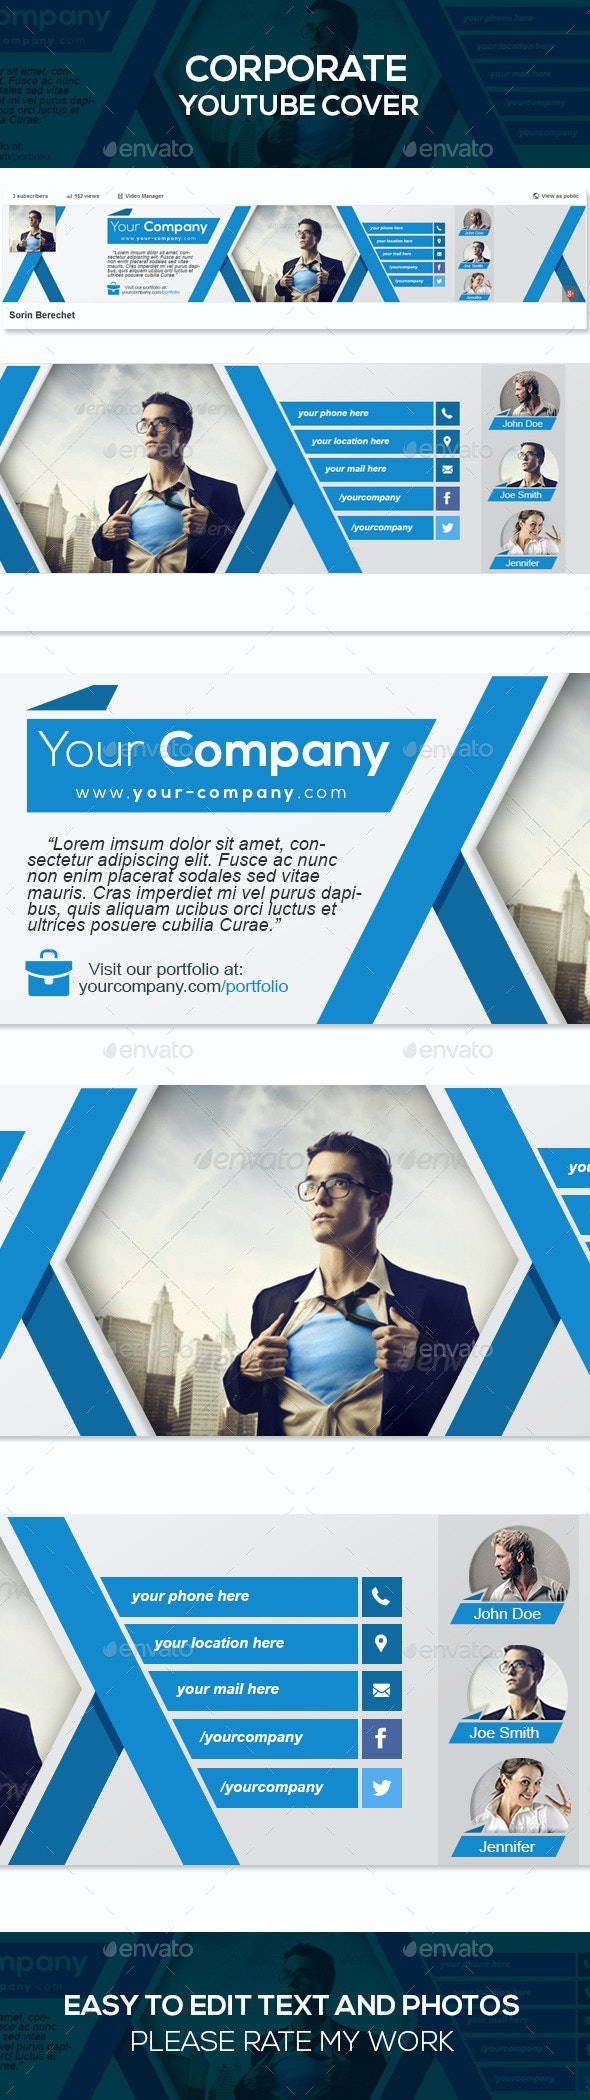 Corporate Youtube Banner Template - YouTube Social Media